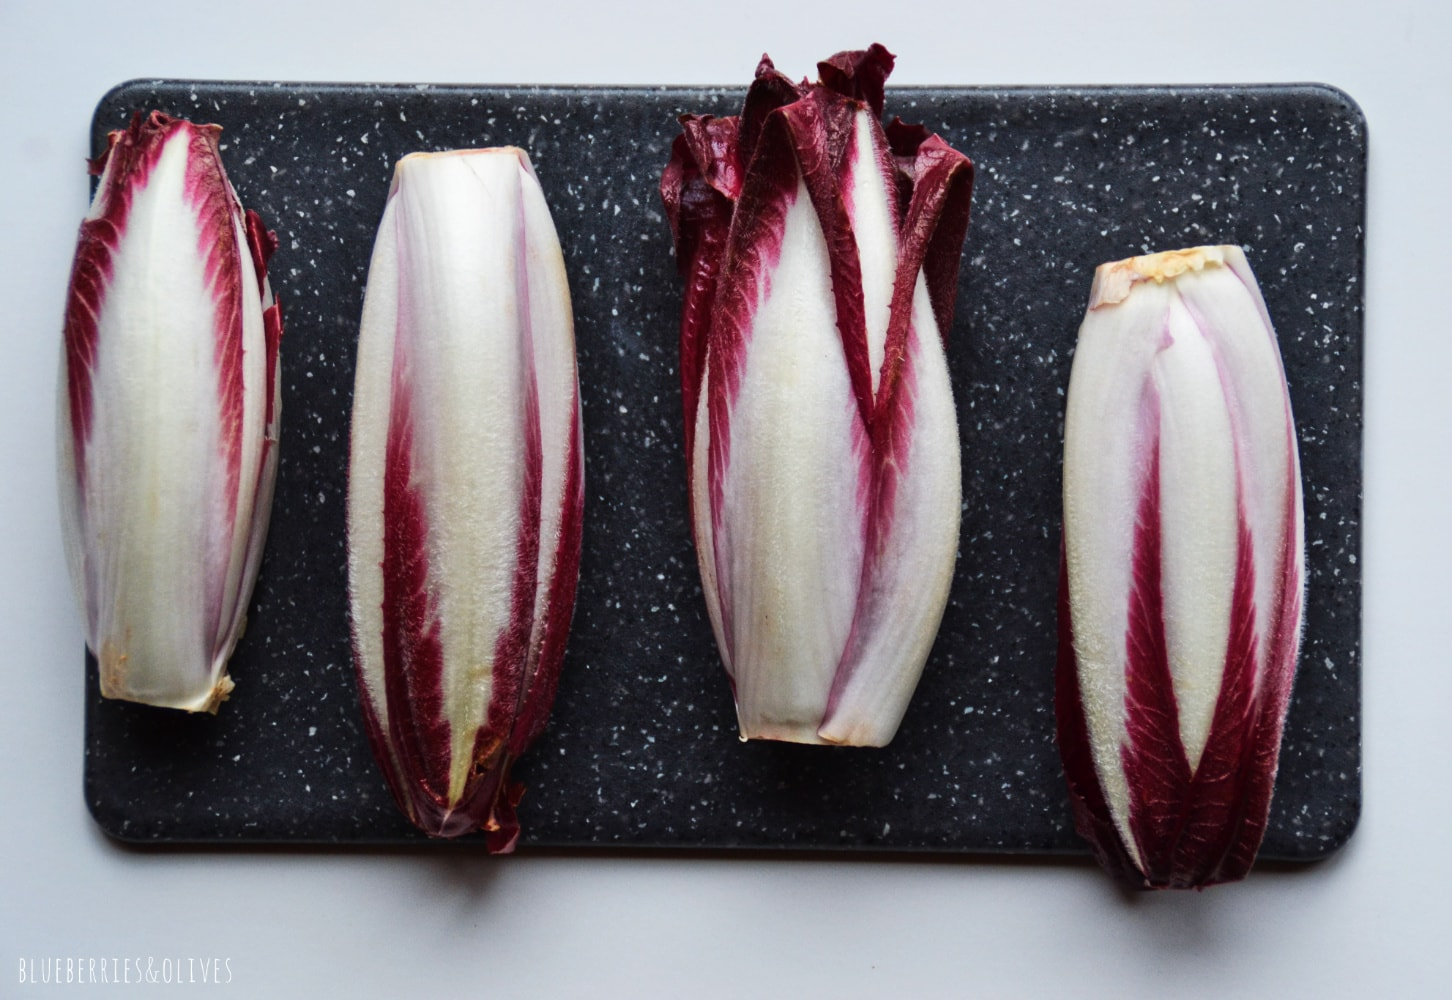 FRESH CHICORY OVER A BLACK GRANITE CUTTING BOARD